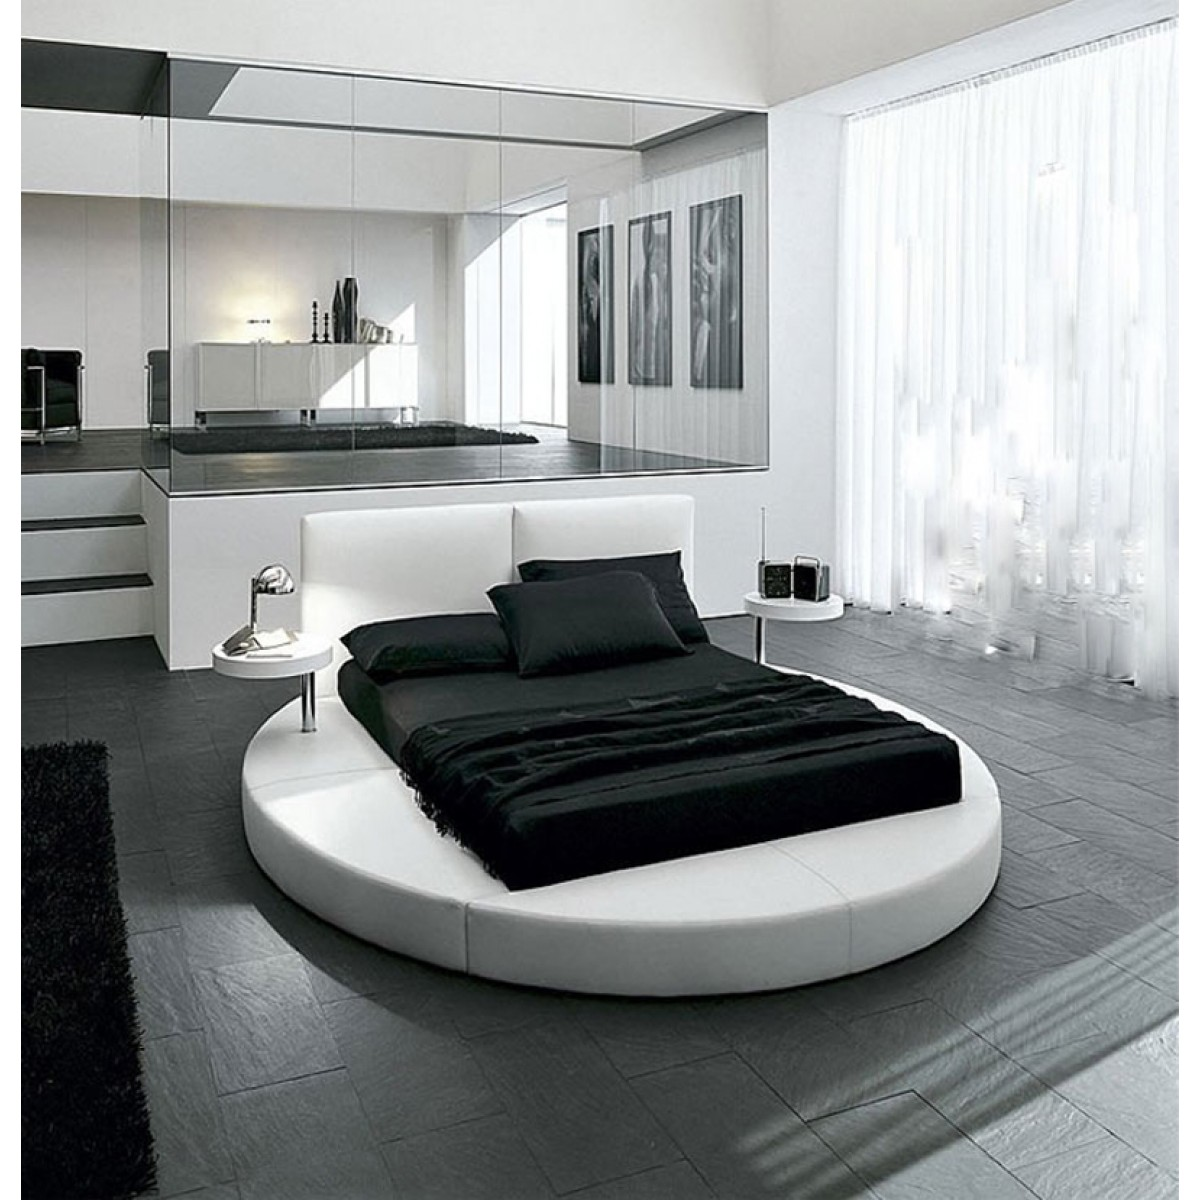 lit rond personnalisable maldives 140 160 180 cuir ou simili sommier. Black Bedroom Furniture Sets. Home Design Ideas